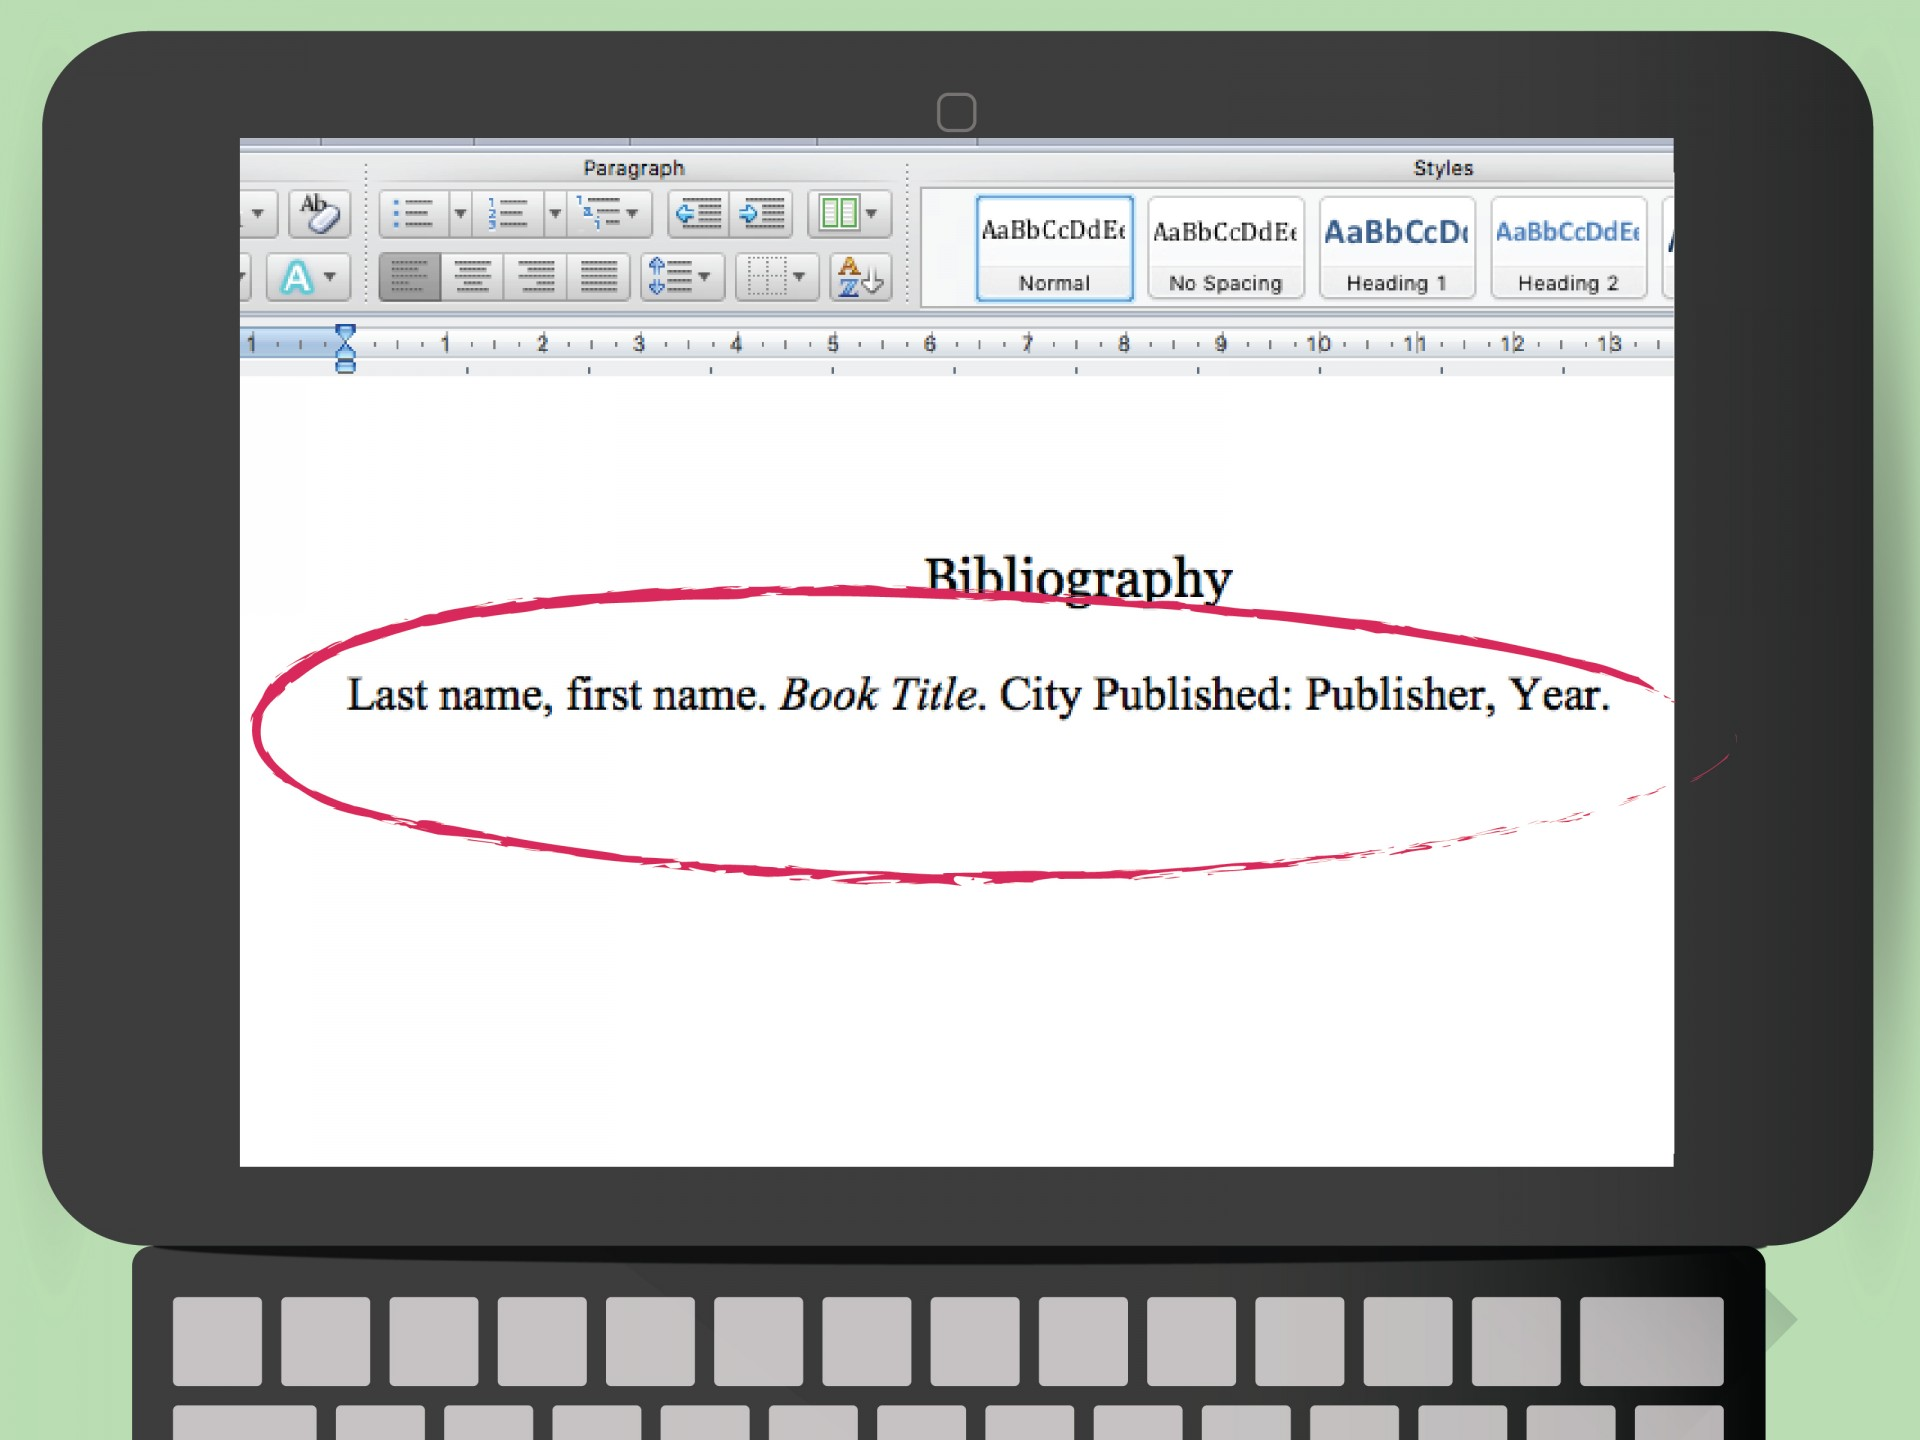 003 How To Cite Song In An Essay Example Textbook Step Version Fearsome A Title Text Mla Apa 1920